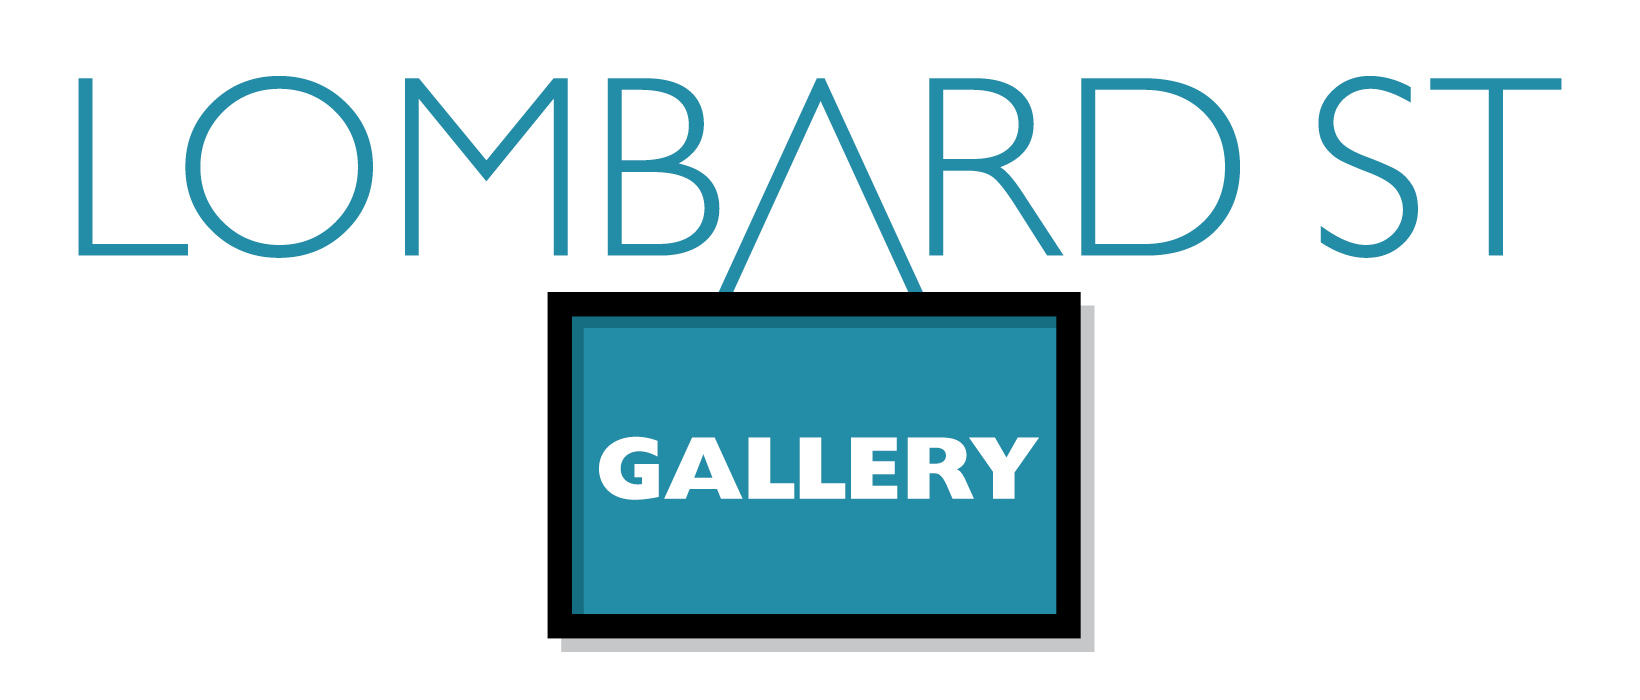 Lombard Street Gallery_Logo_Margate NOW festival 2019